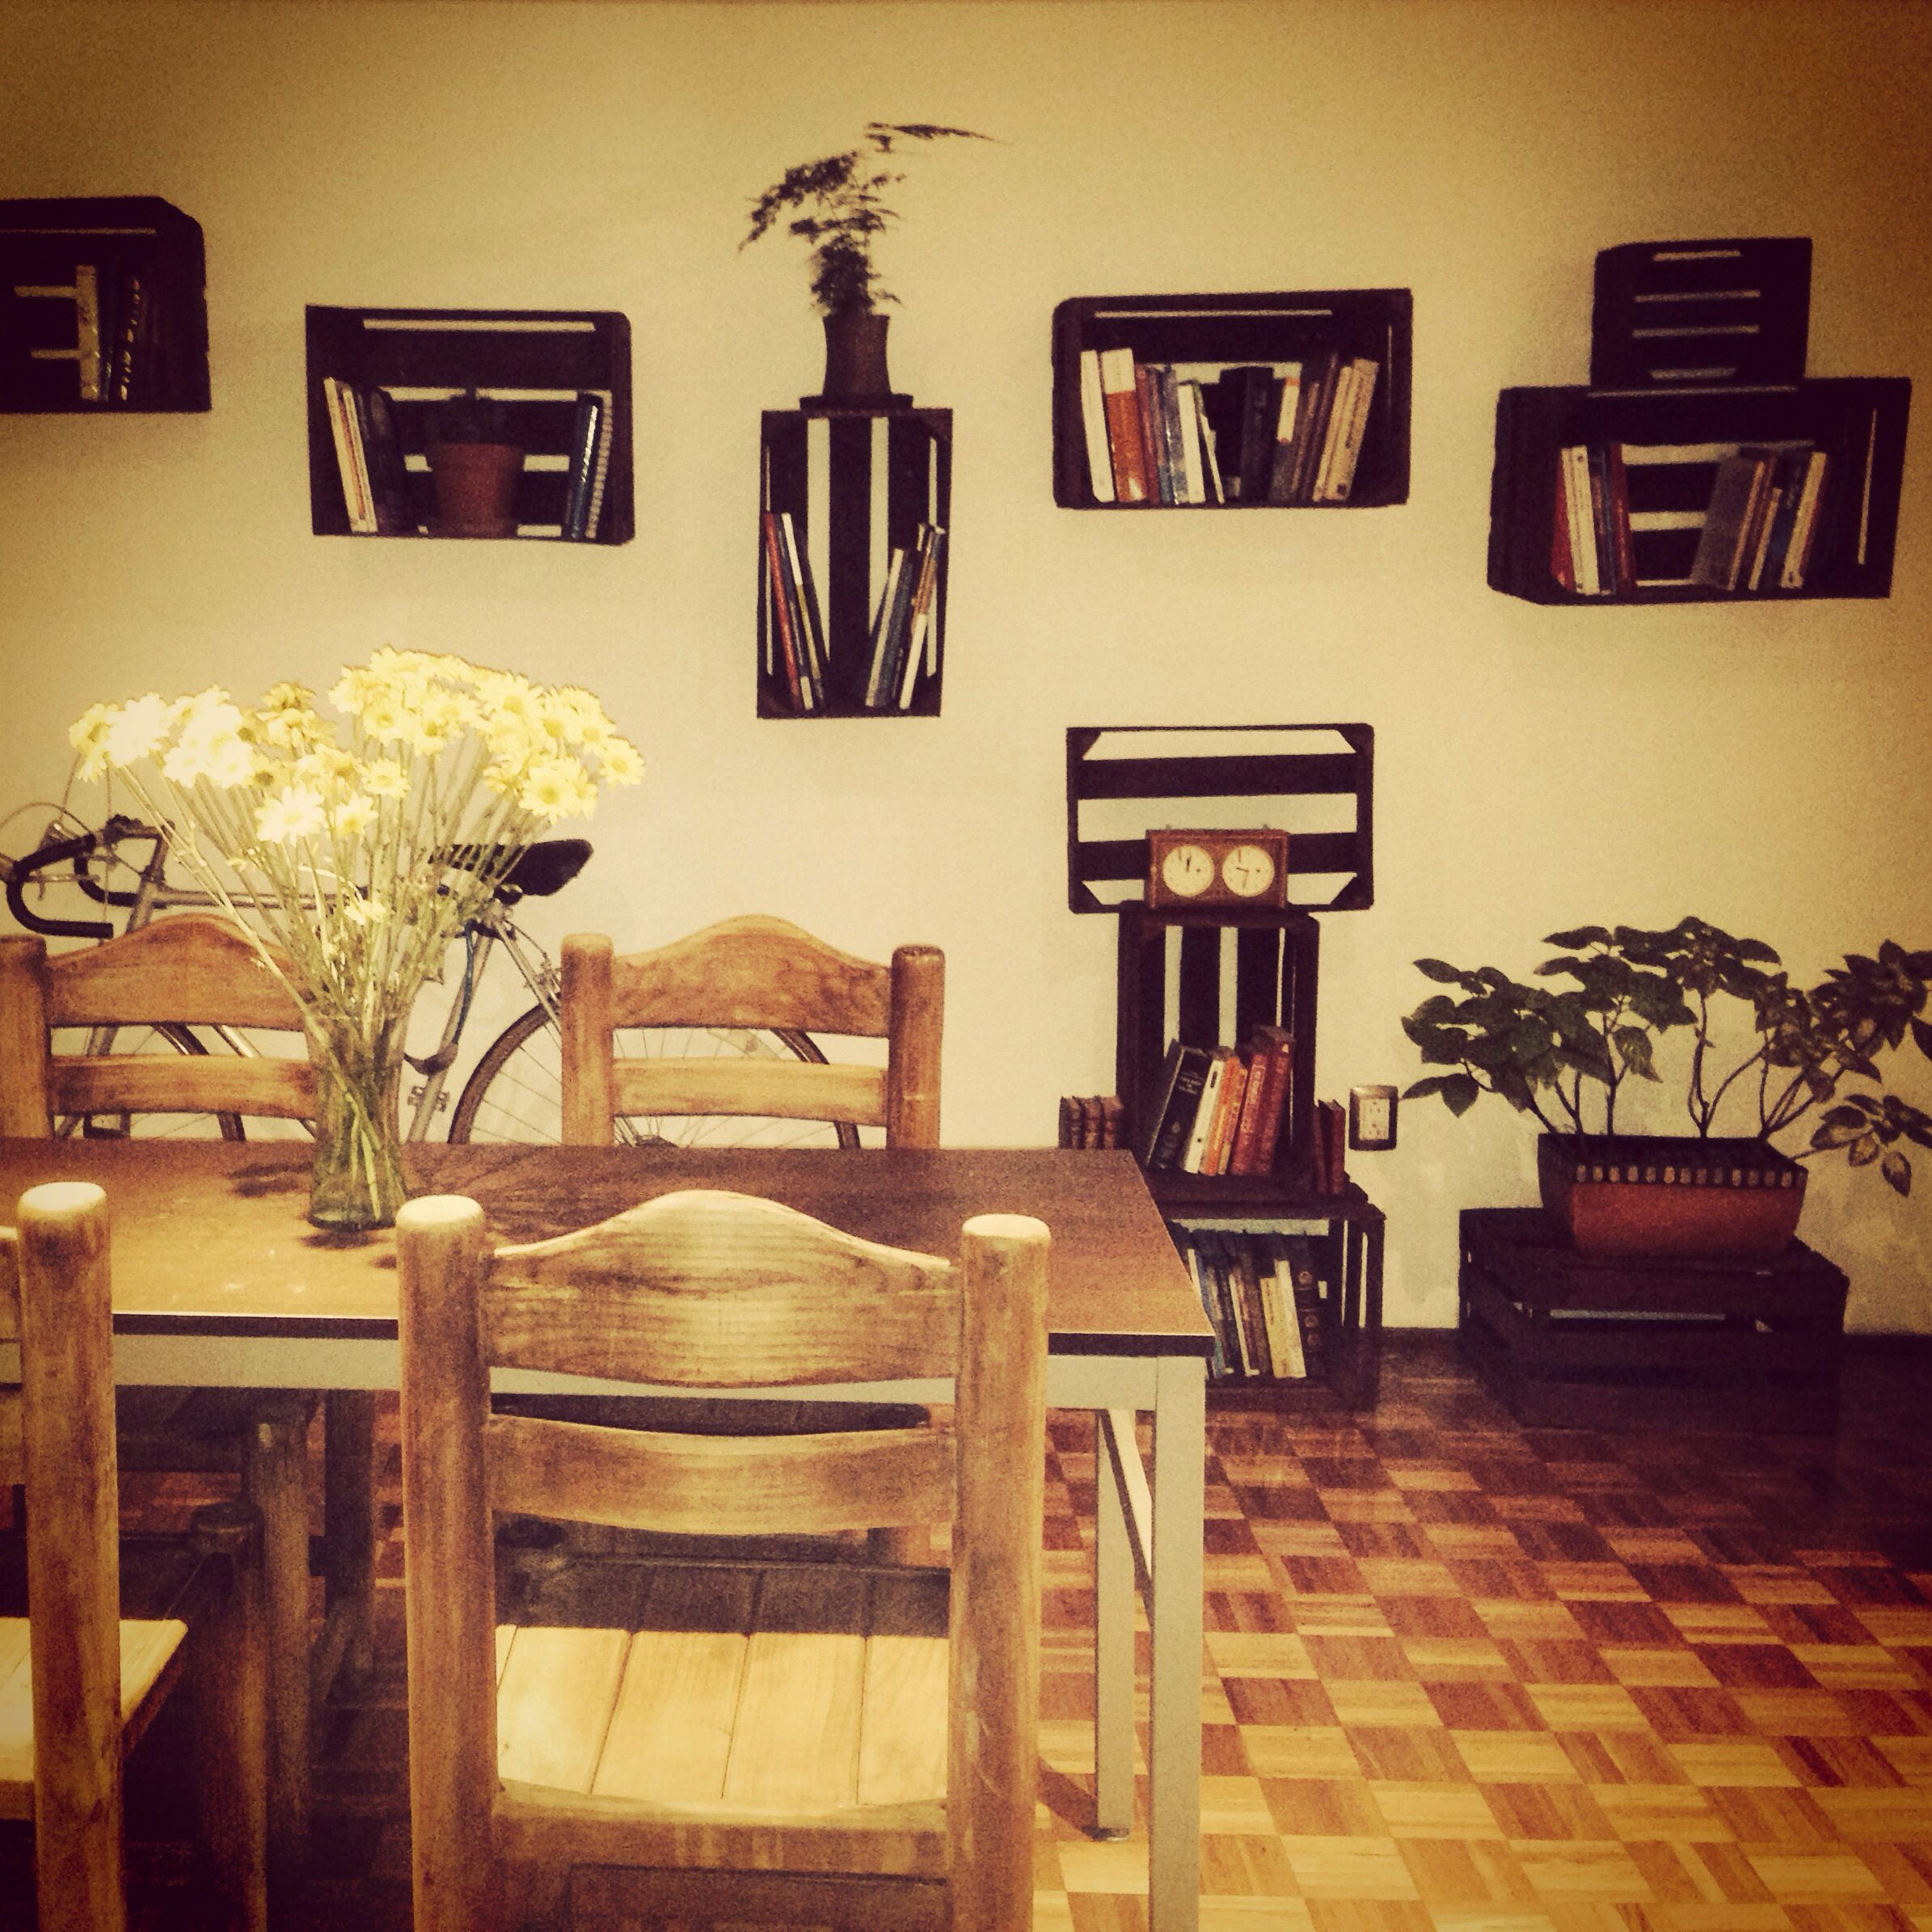 Guacal Huacal Huacales Huacal Time Pinterest Huacal Sala  # Muebles Con Uacales